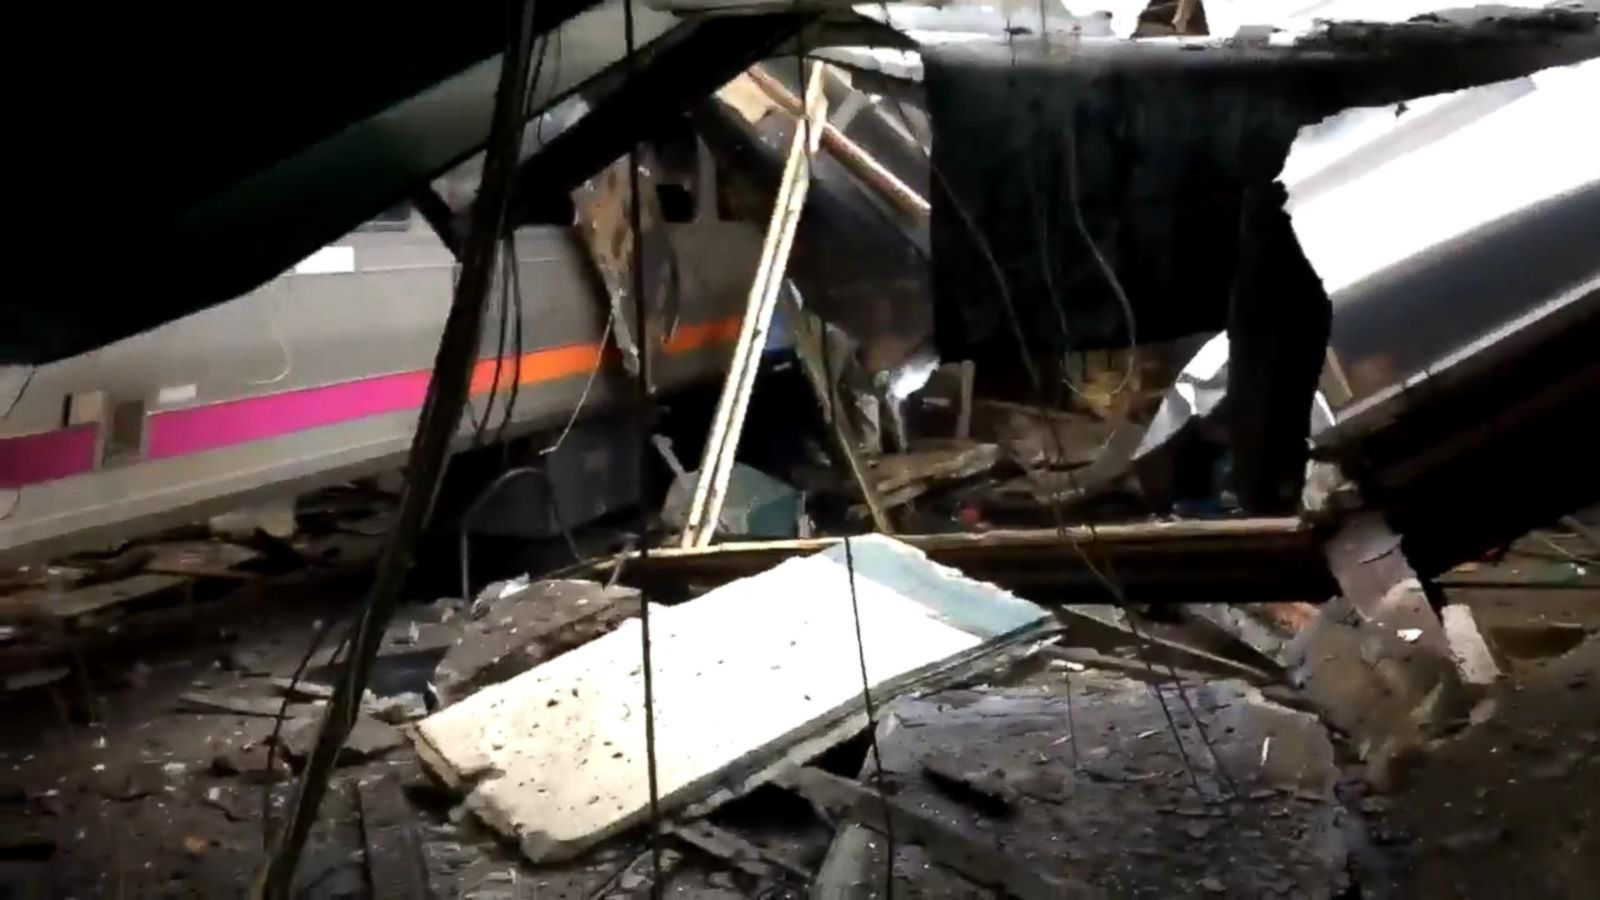 VIDEO: 1 Dead, Dozens Injured in NJ Train Crash